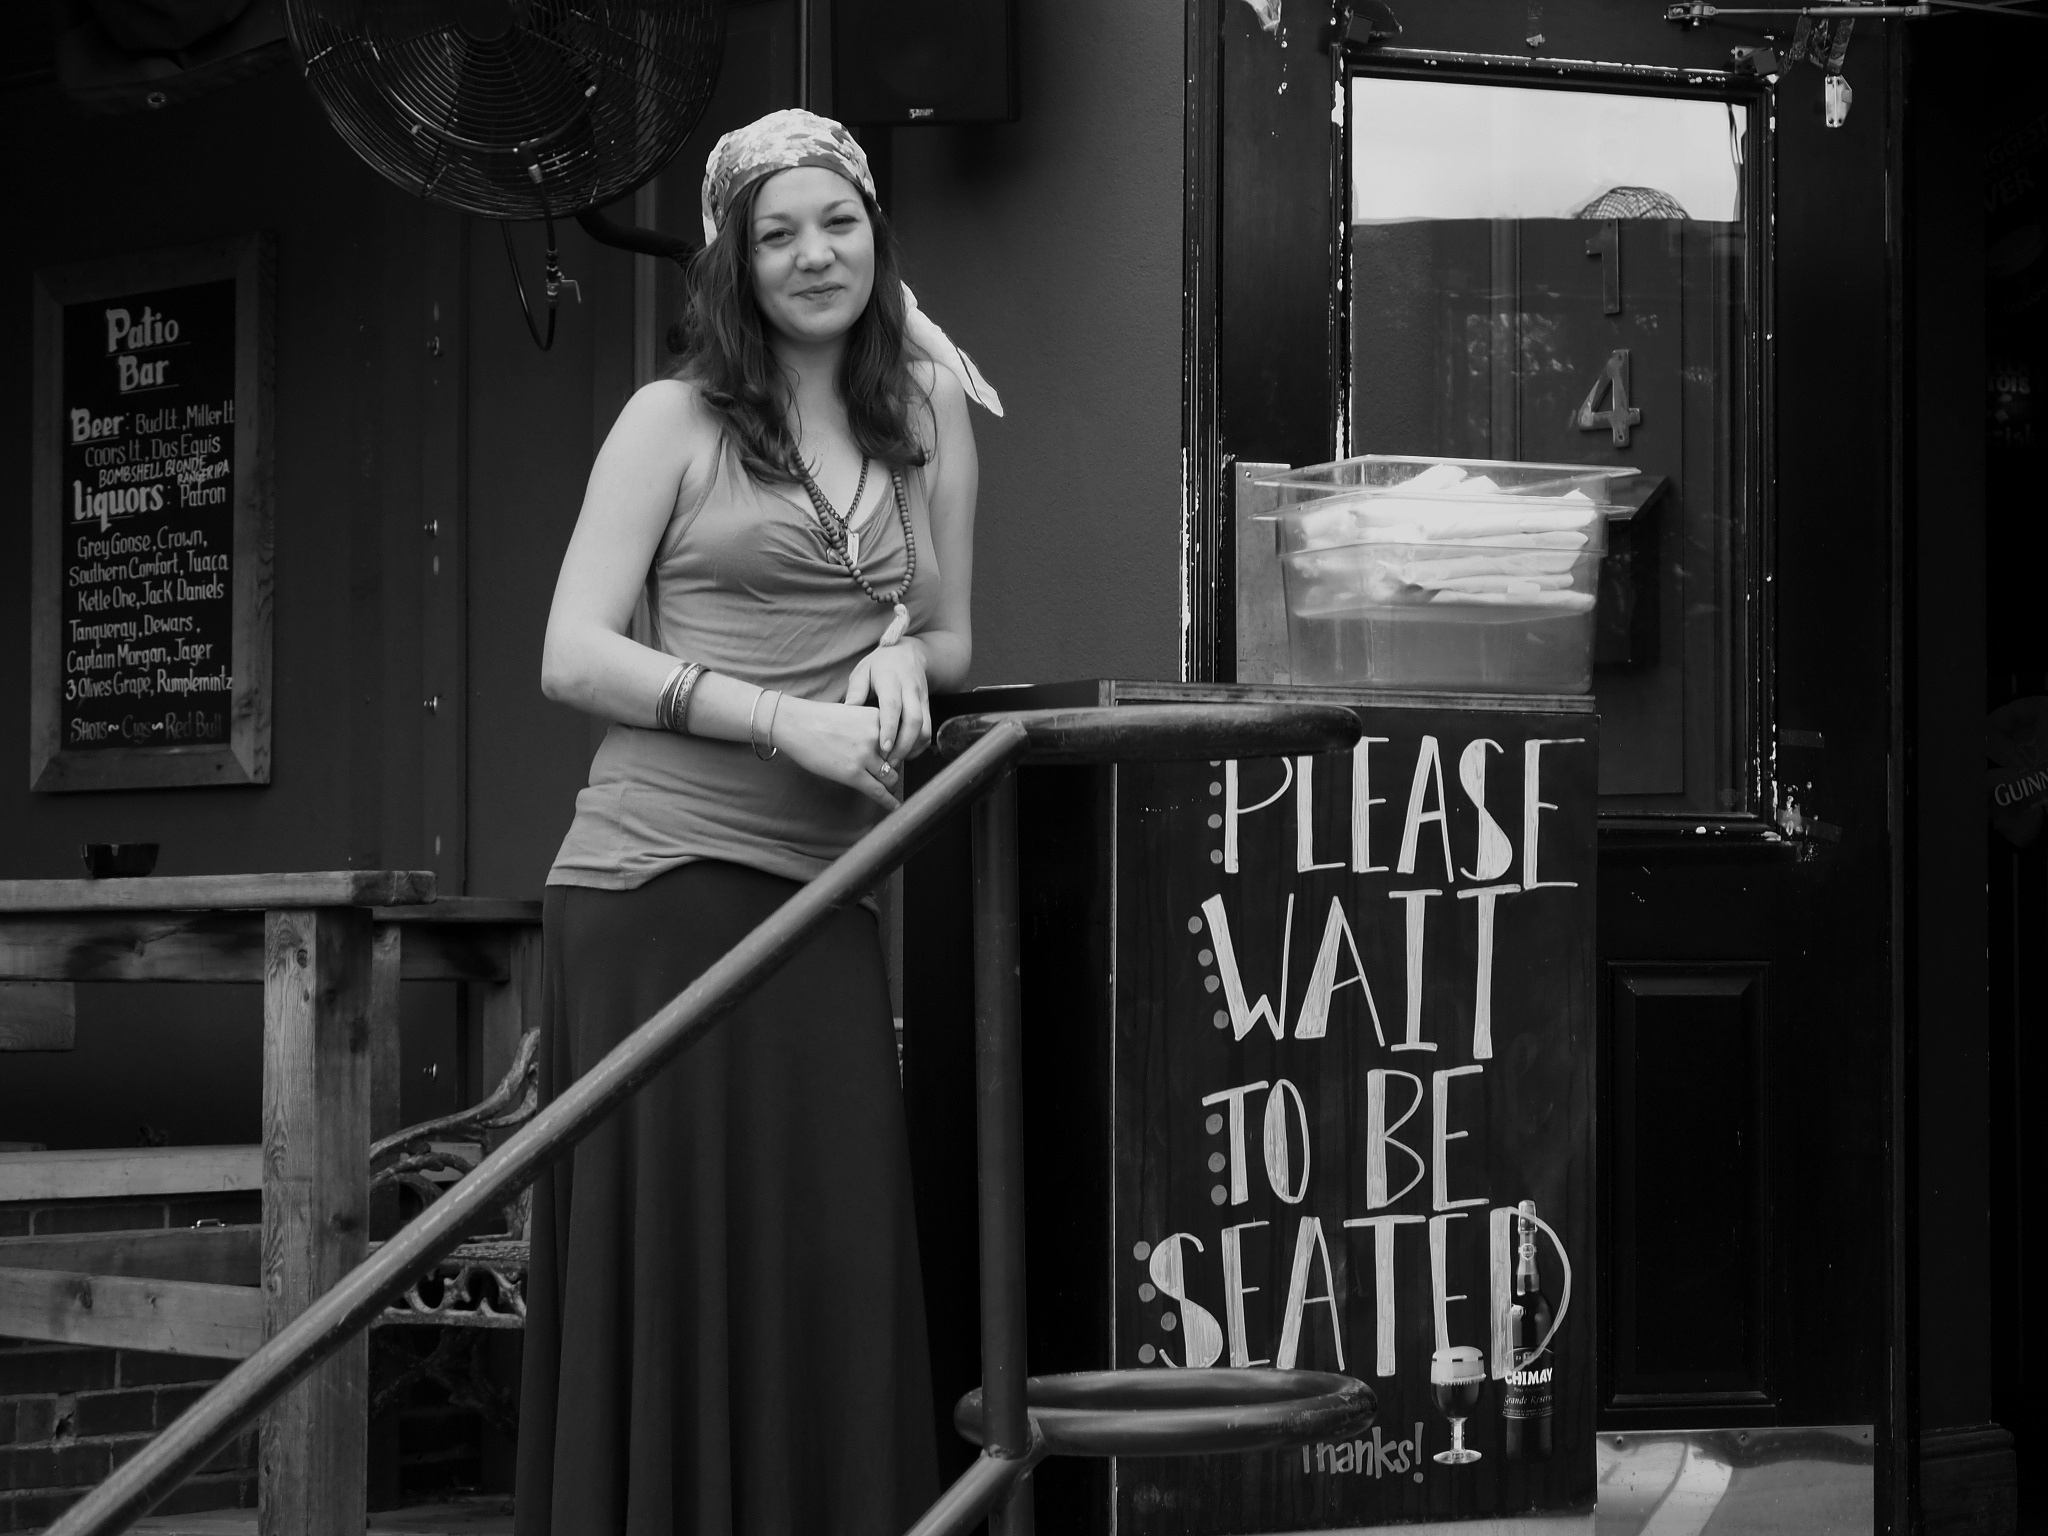 please wait to be seated by Jeff Tidwell